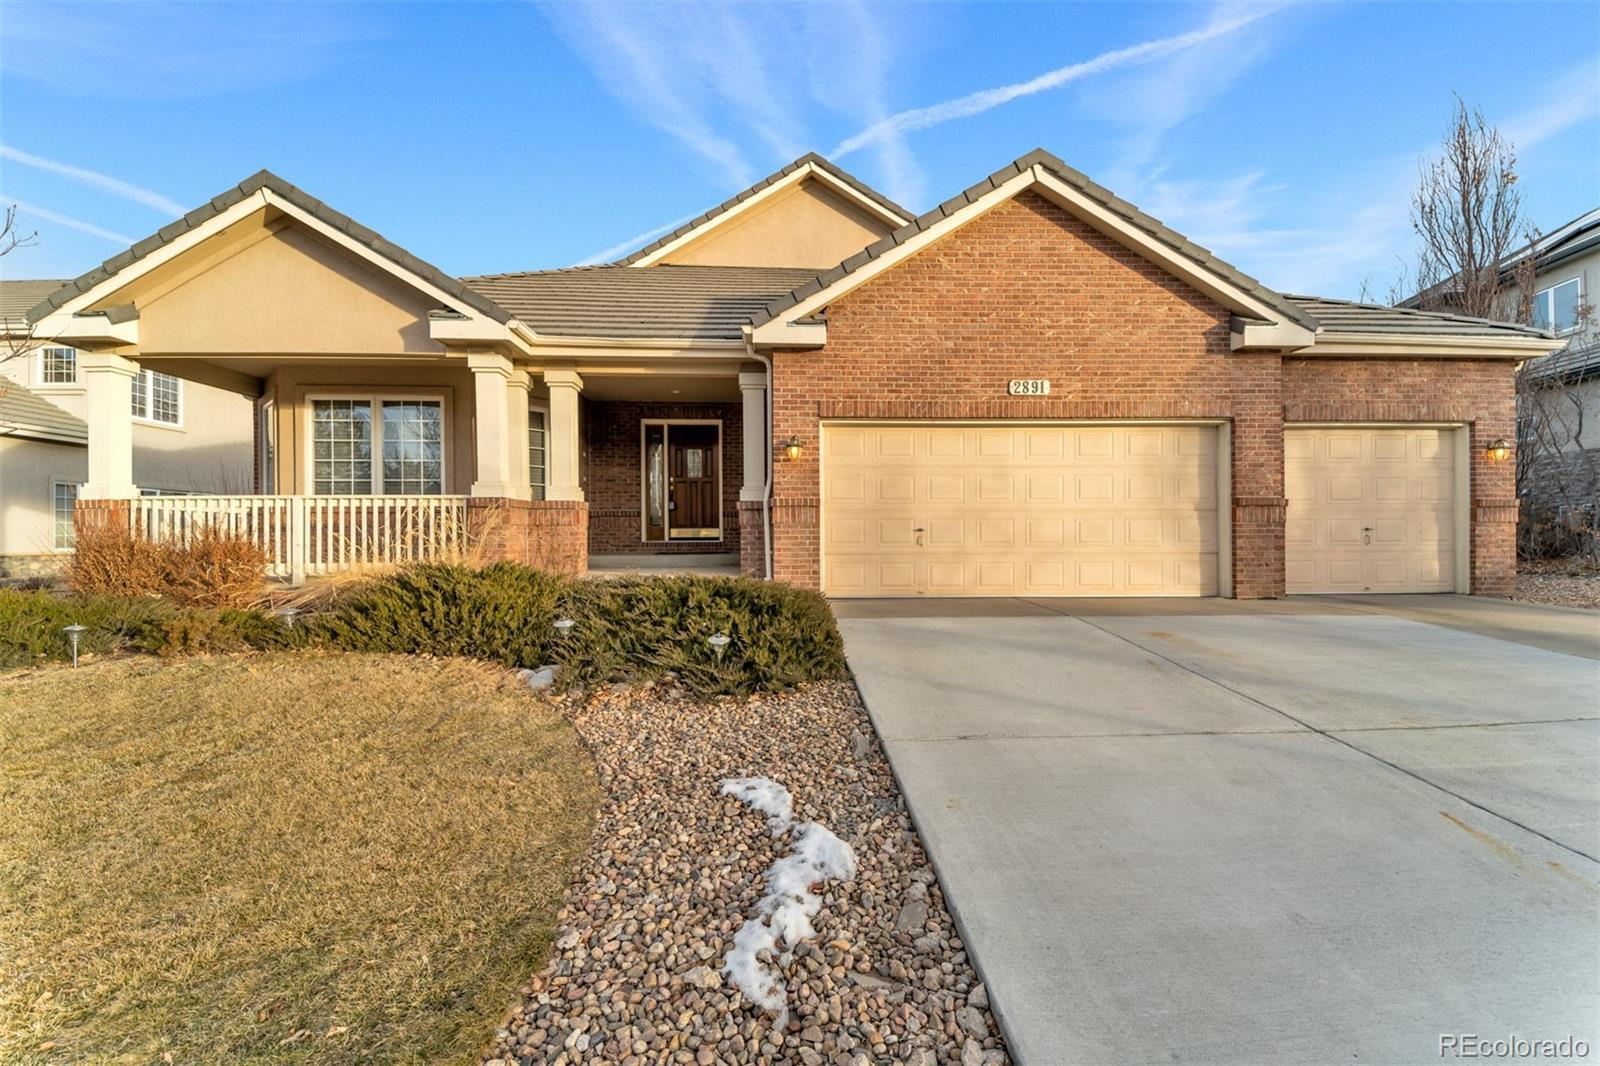 2891 W 114th Court, Westminster, CO 80234 - #: 3957887